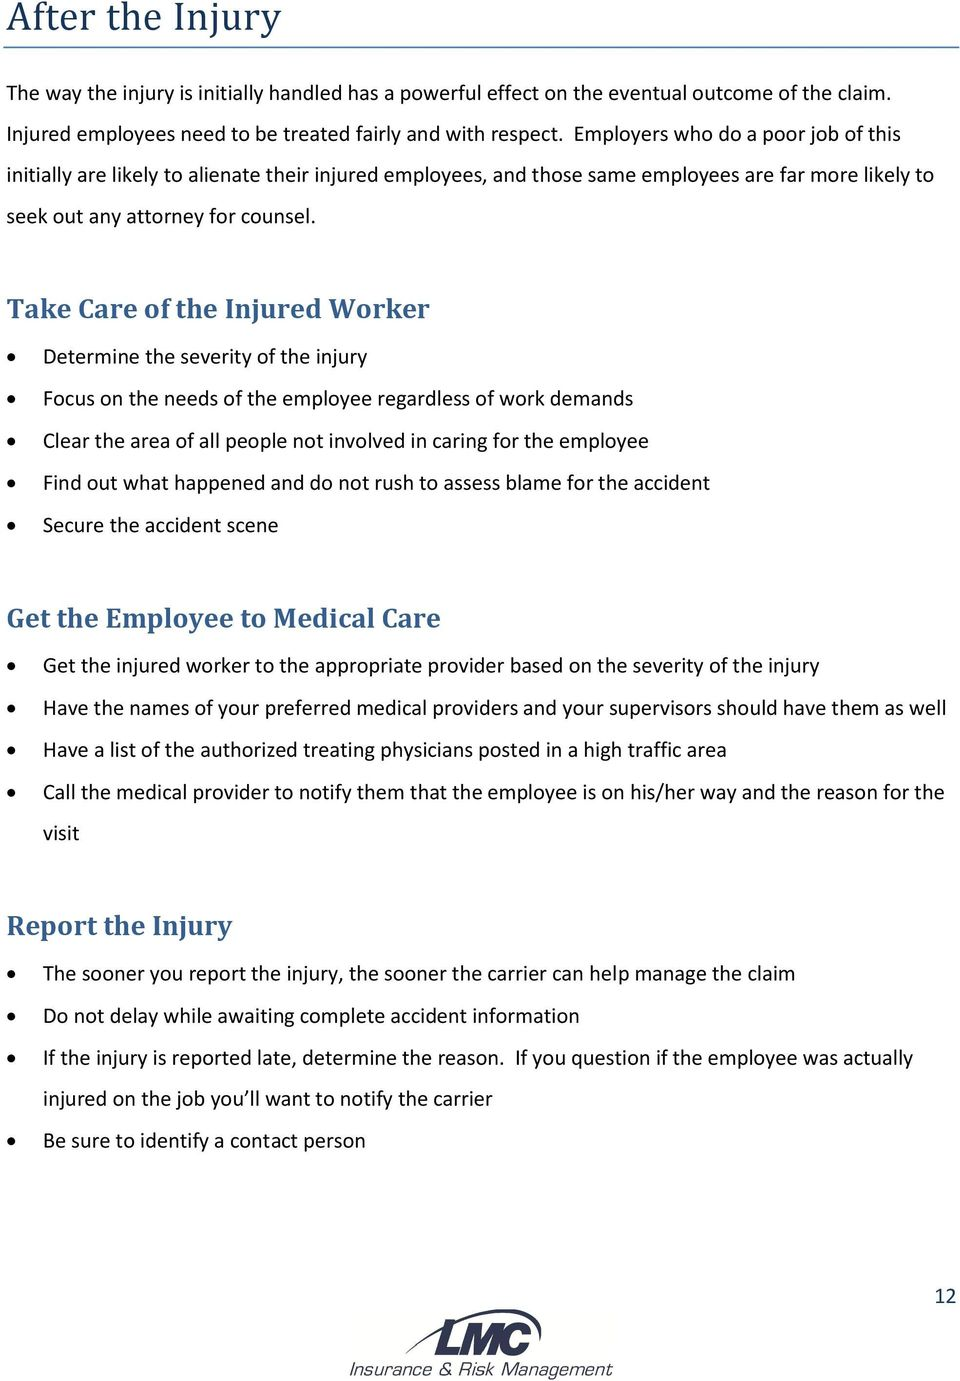 Take Care of the Injured Worker Determine the severity of the injury Focus on the needs of the employee regardless of work demands Clear the area of all people not involved in caring for the employee